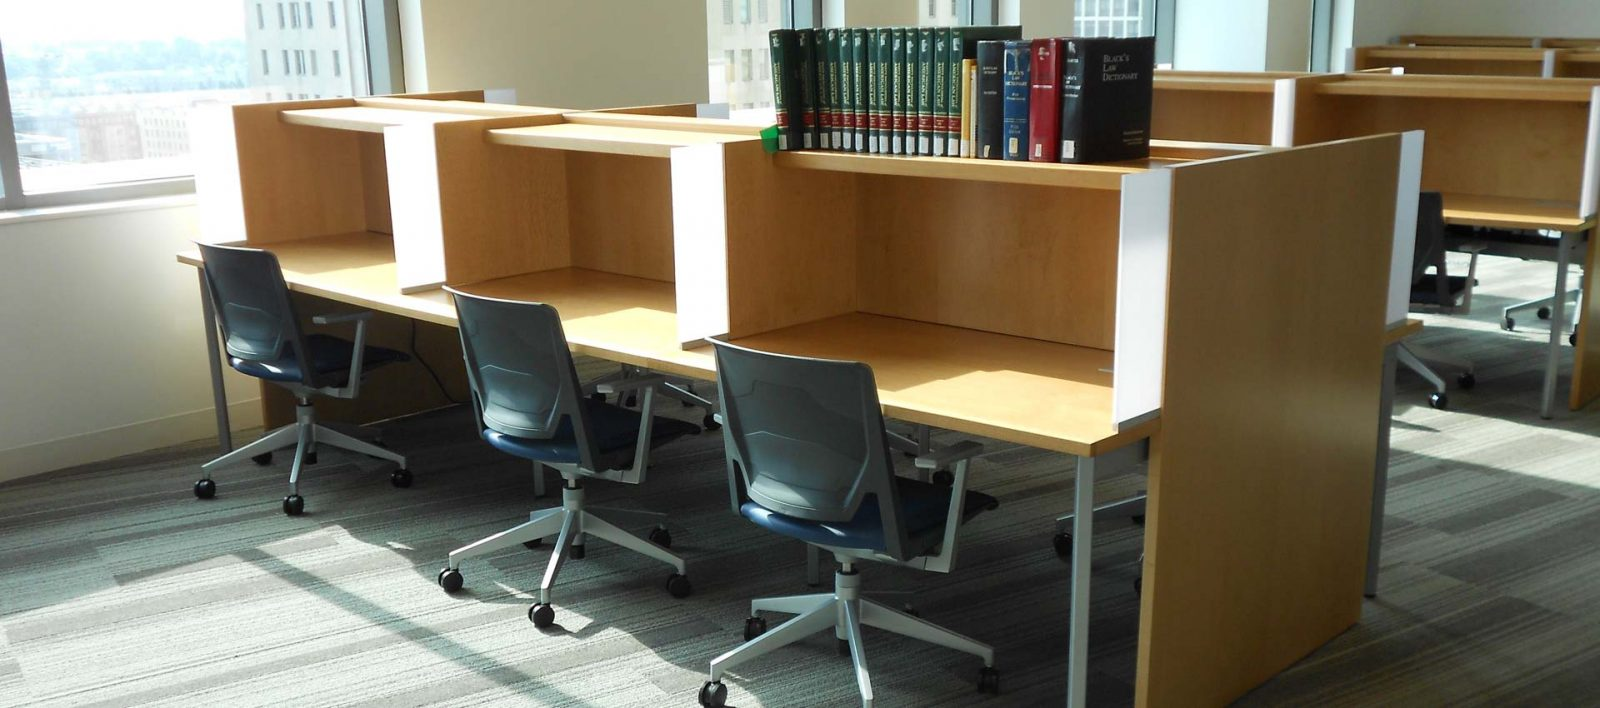 Law Library Furniture